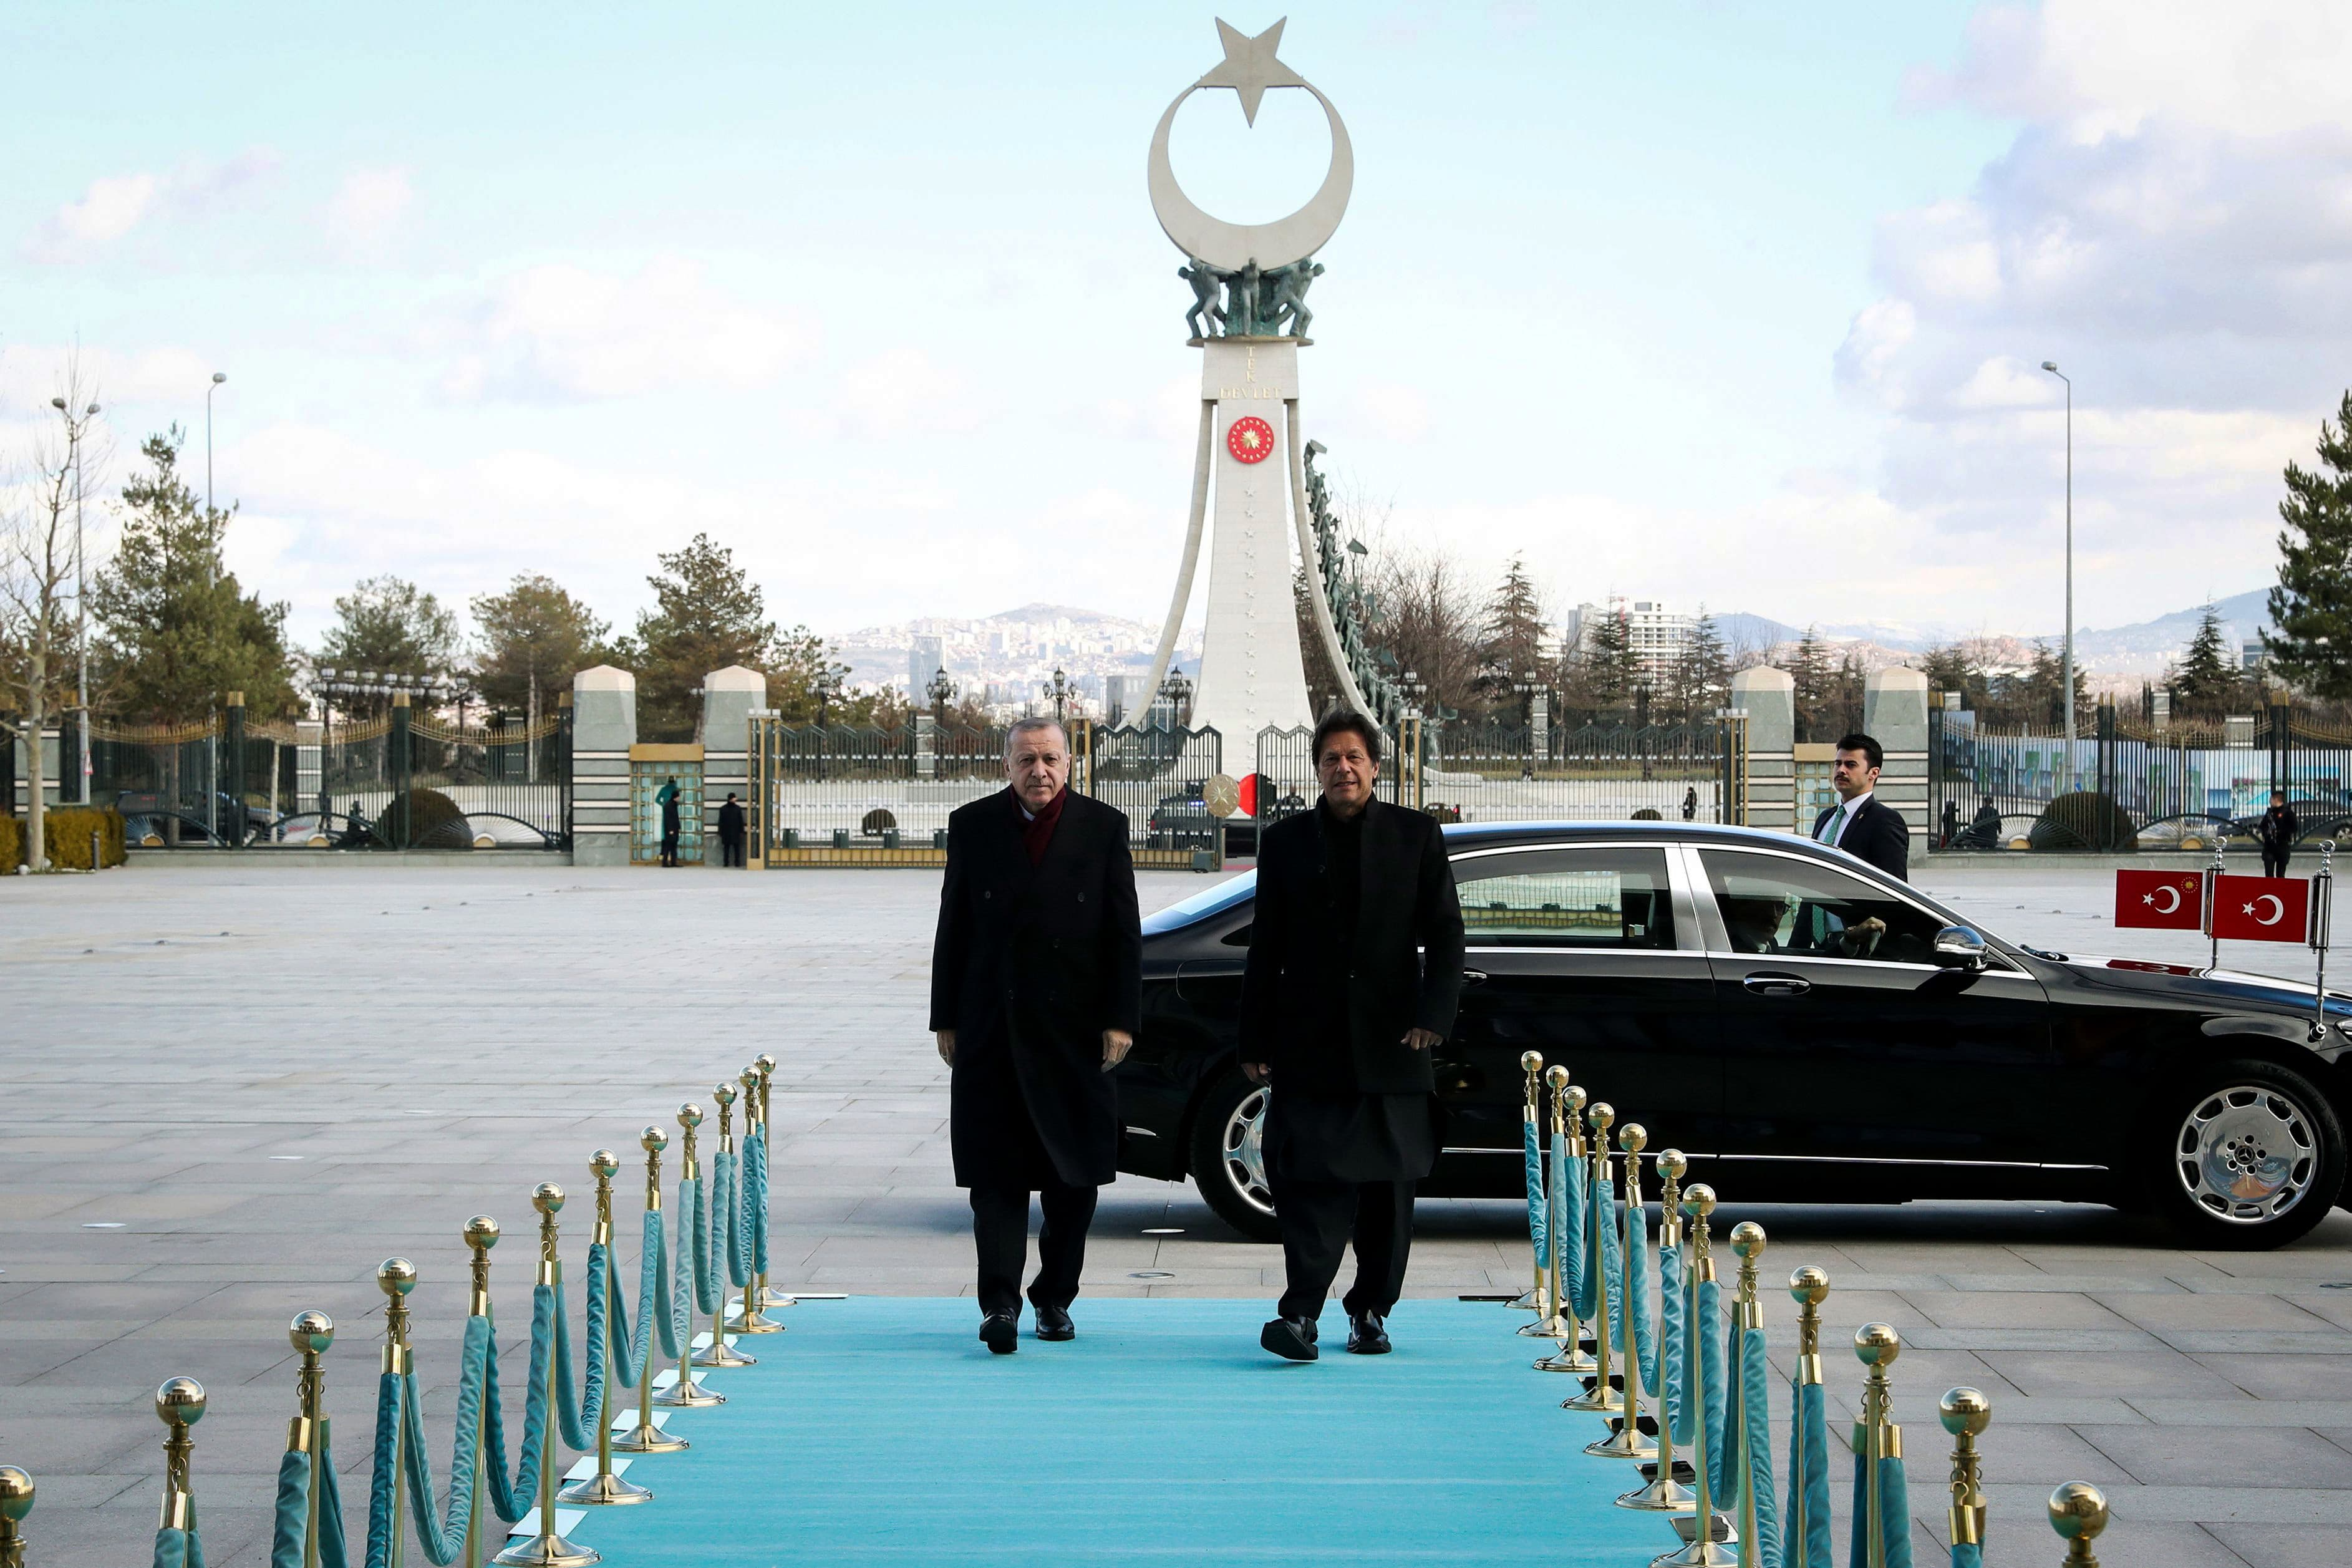 "A handout picture taken and released by the Turkish Presidential Press Office, shows Turkish President Recep Tayyip Erdogan (L) welcoming Pakistan's Prime Minister Imran Khan (R) ahead of their meeting at the Presidential Complex in Ankara, on January 4, 2019. (Photo by KAYHAN OZER / AFP) / RESTRICTED TO EDITORIAL USE - MANDATORY CREDIT ""AFP PHOTO / TURKISH PRESIDENTIAL PRESS OFFICE/ KAYHAN OZER"" - NO MARKETING NO ADVERTISING CAMPAIGNS - DISTRIBUTED AS A SERVICE TO CLIENTS — AFP or licensors"